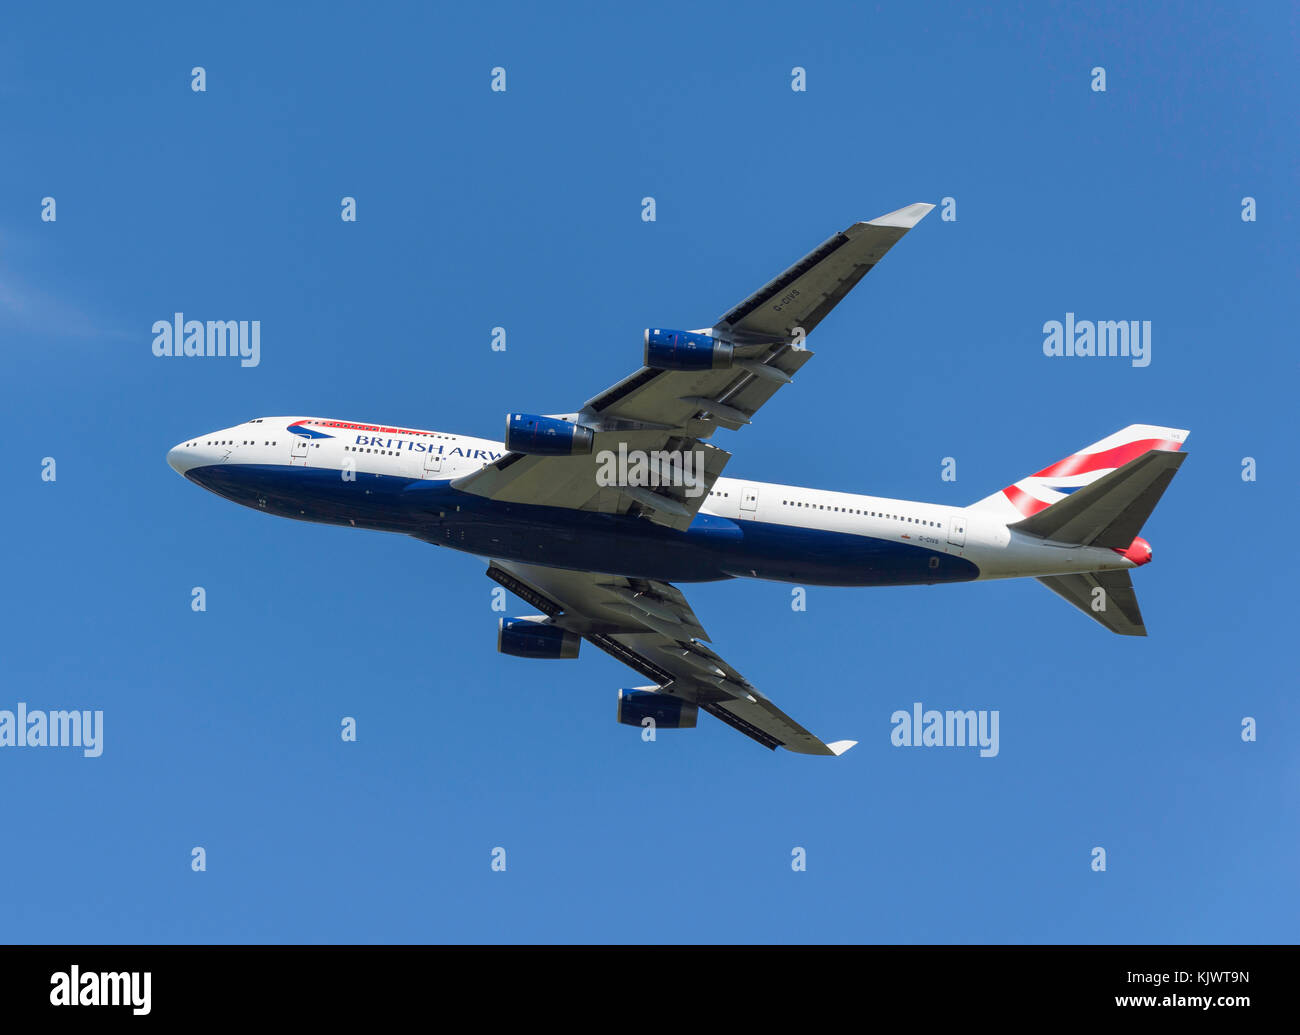 British Airways Boeing 747-436 taking off from Heathrow Airport, Greater London, England, United Kingdom Stock Photo